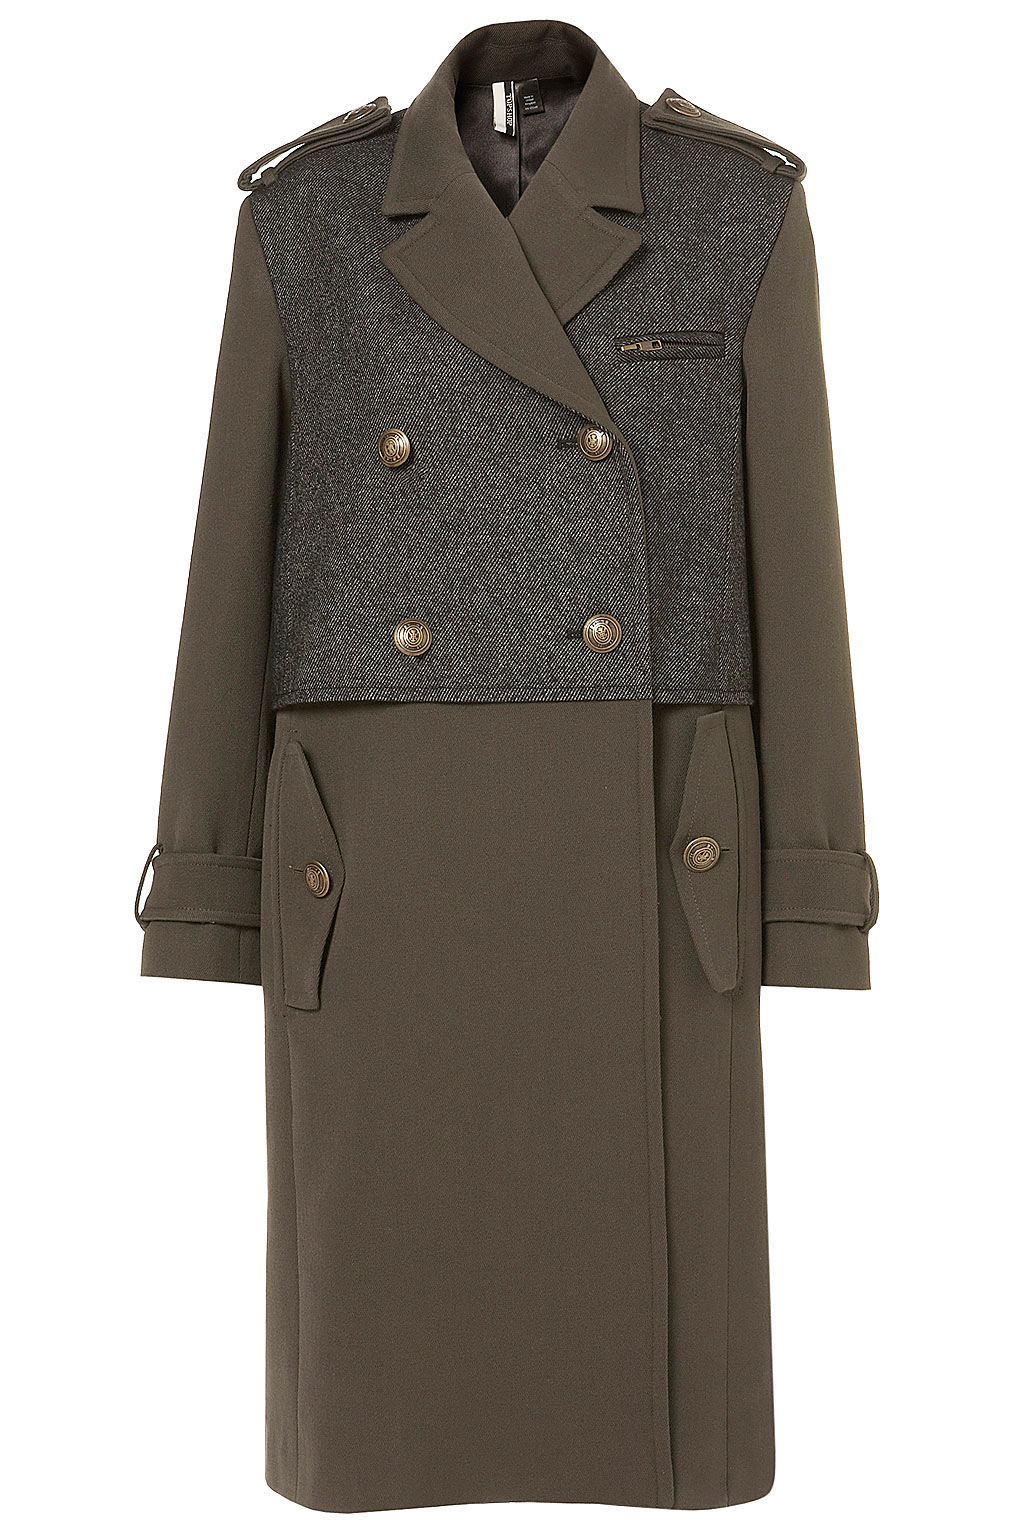 "a ""premium military"" coat from Topshop"